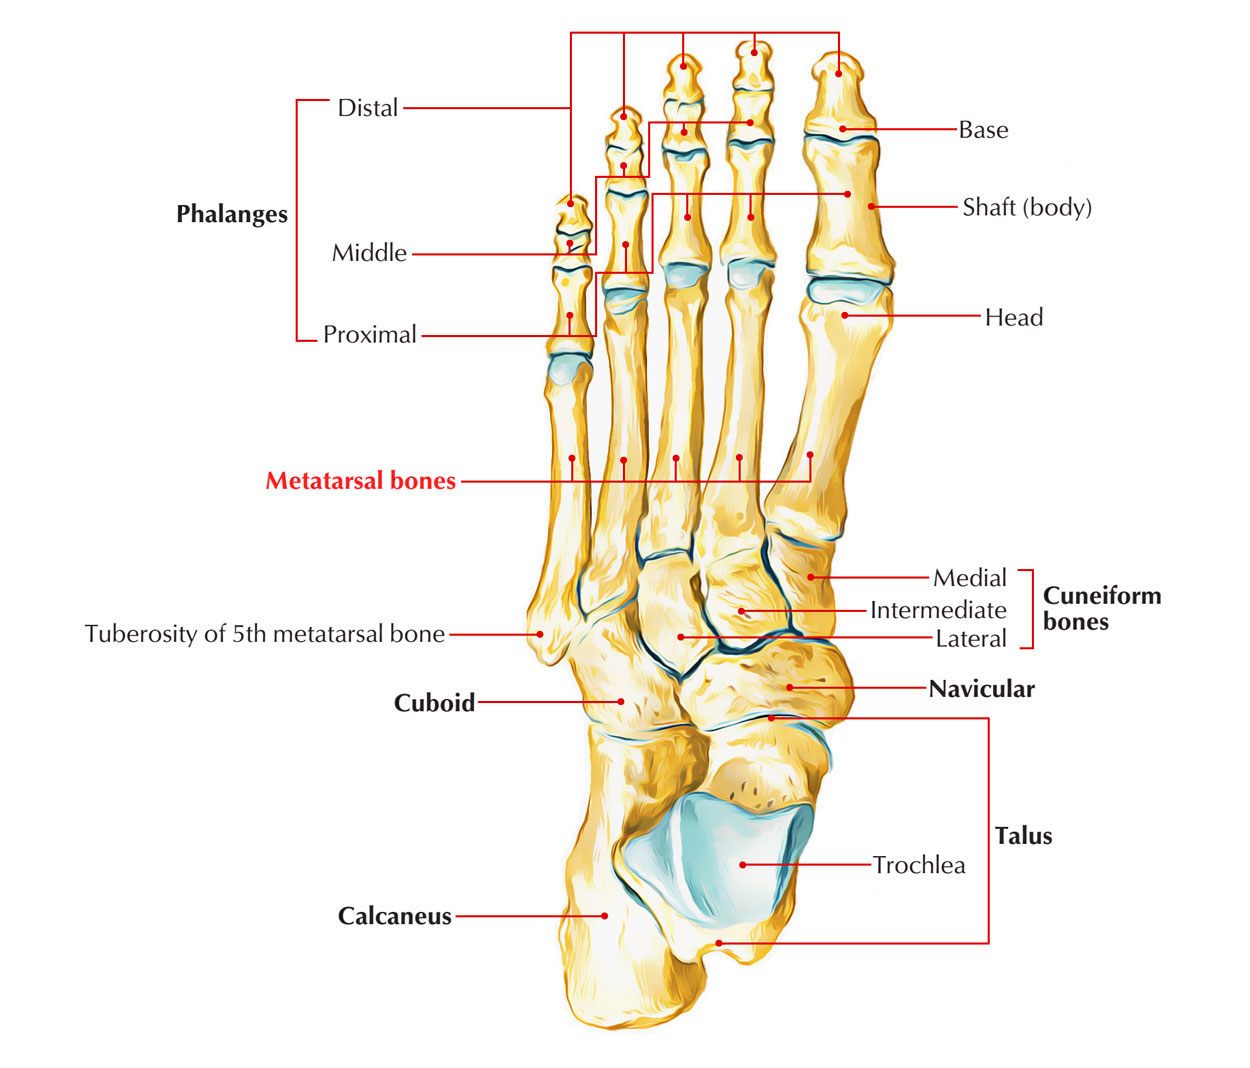 Skeleton of the Foot: Metatarsal Bones